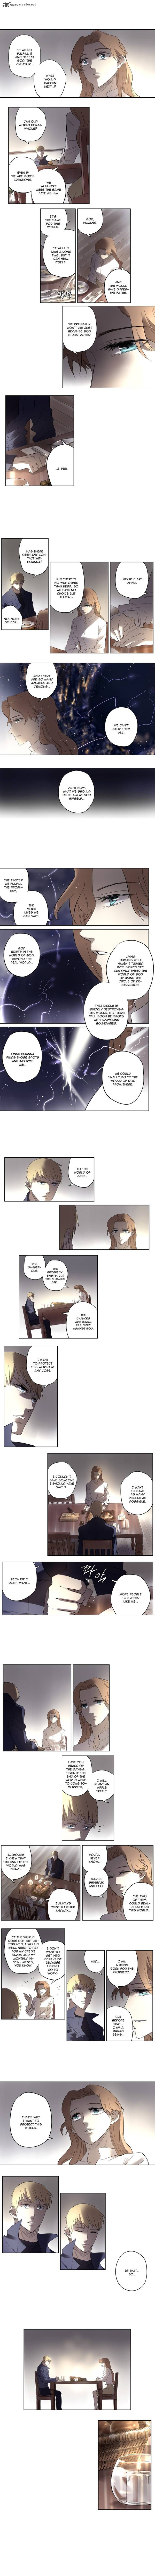 Thesis 22 Page 3